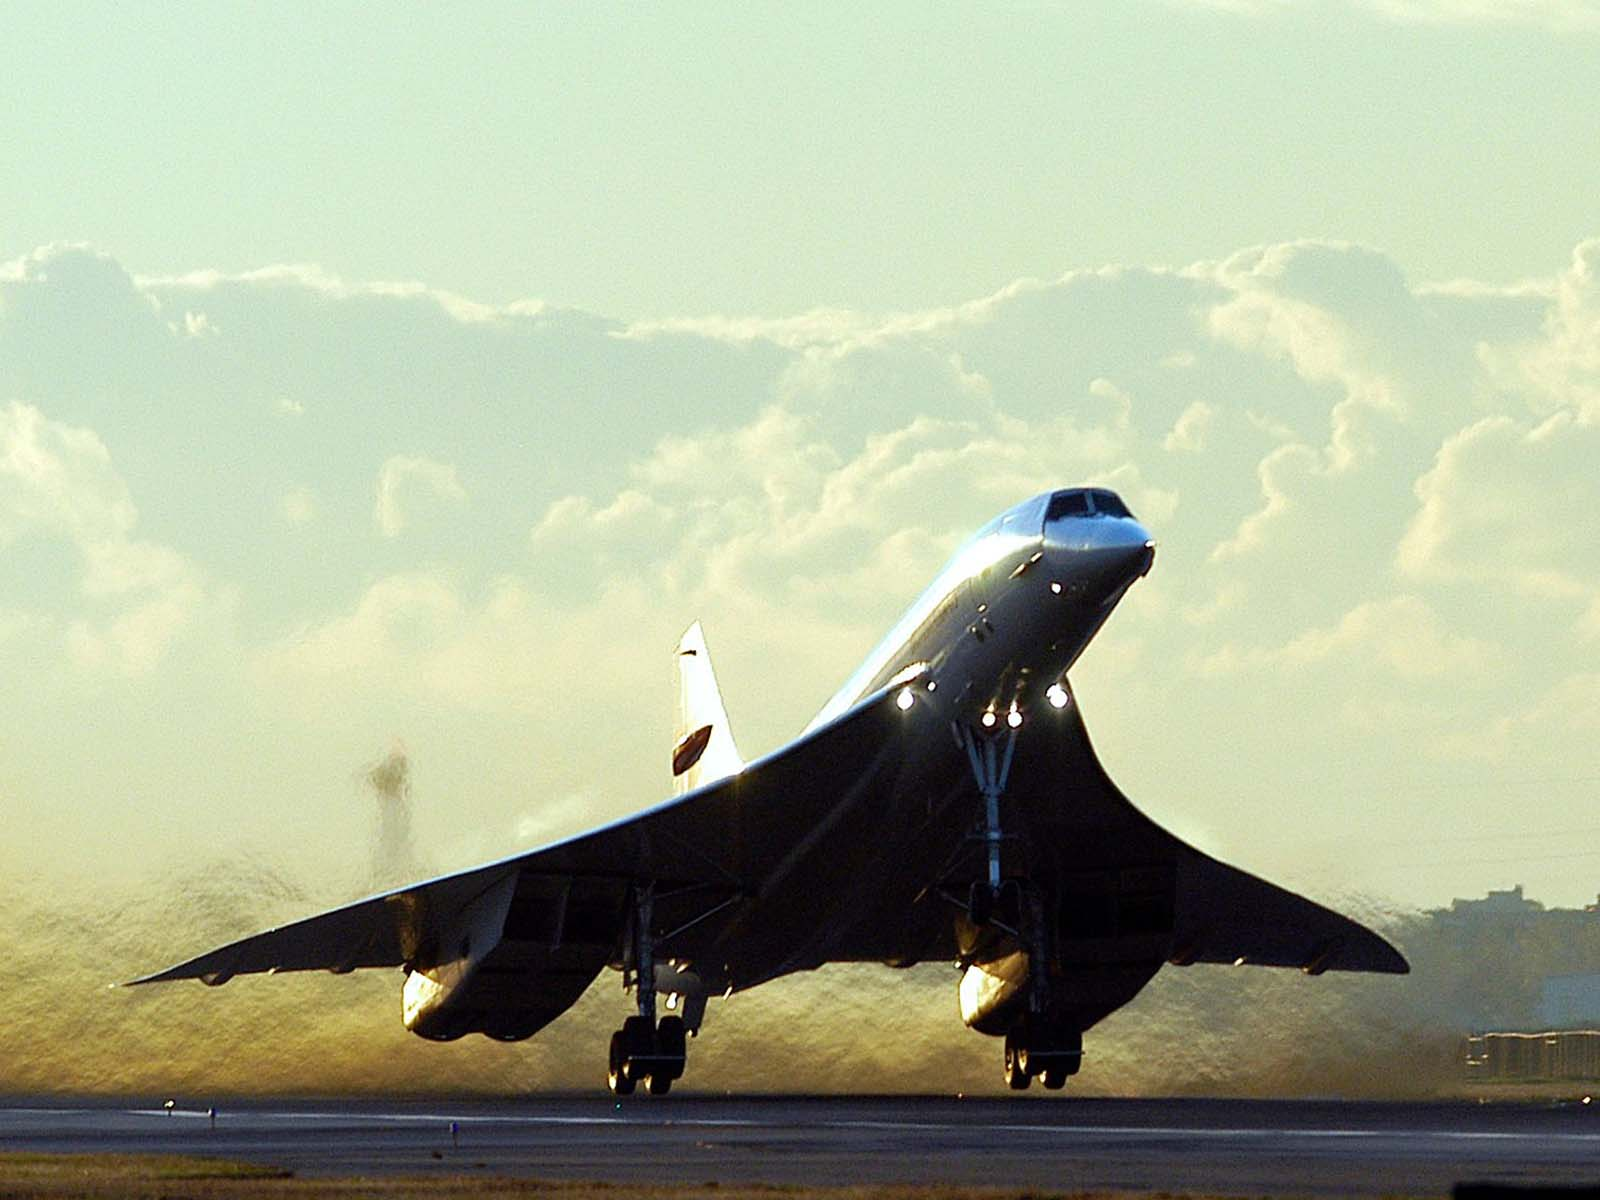 By Spring of 2003, Air France and British Airways announced their intention to permanently retire the Concorde fleet.